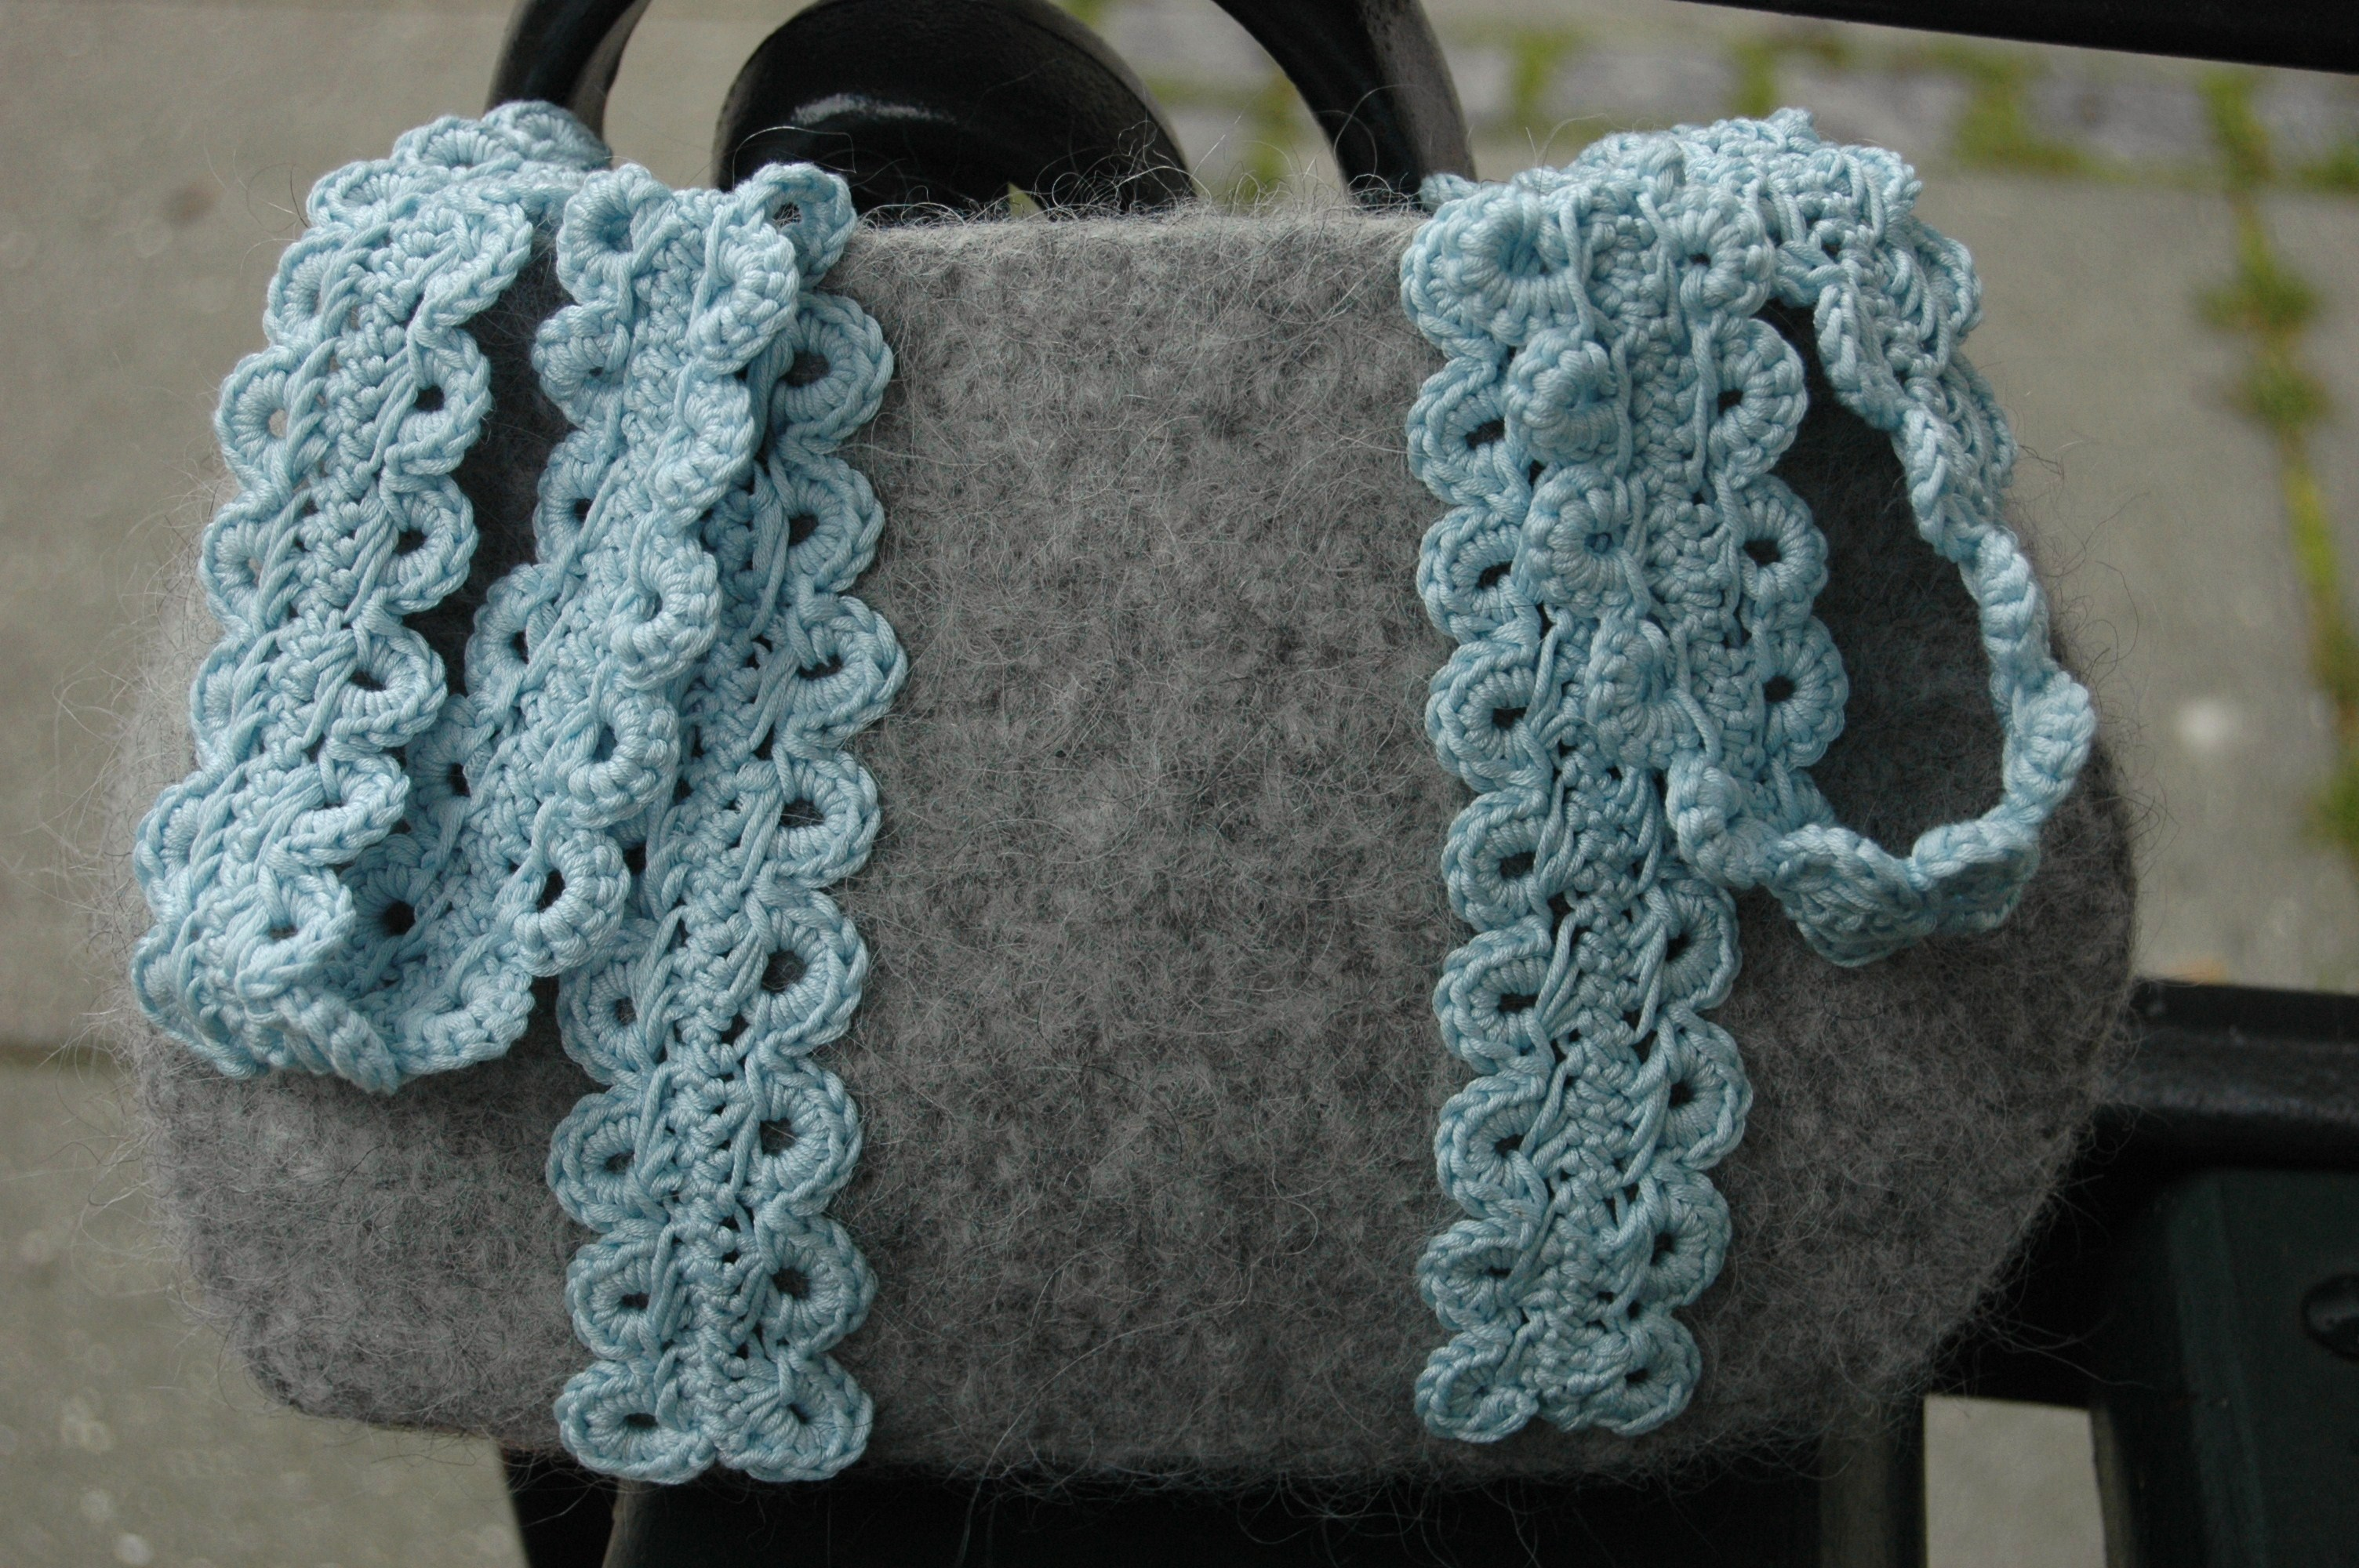 Crochet Backpack Purse : FREE CROCHETED PURSE PATTERNS Crochet For Beginners